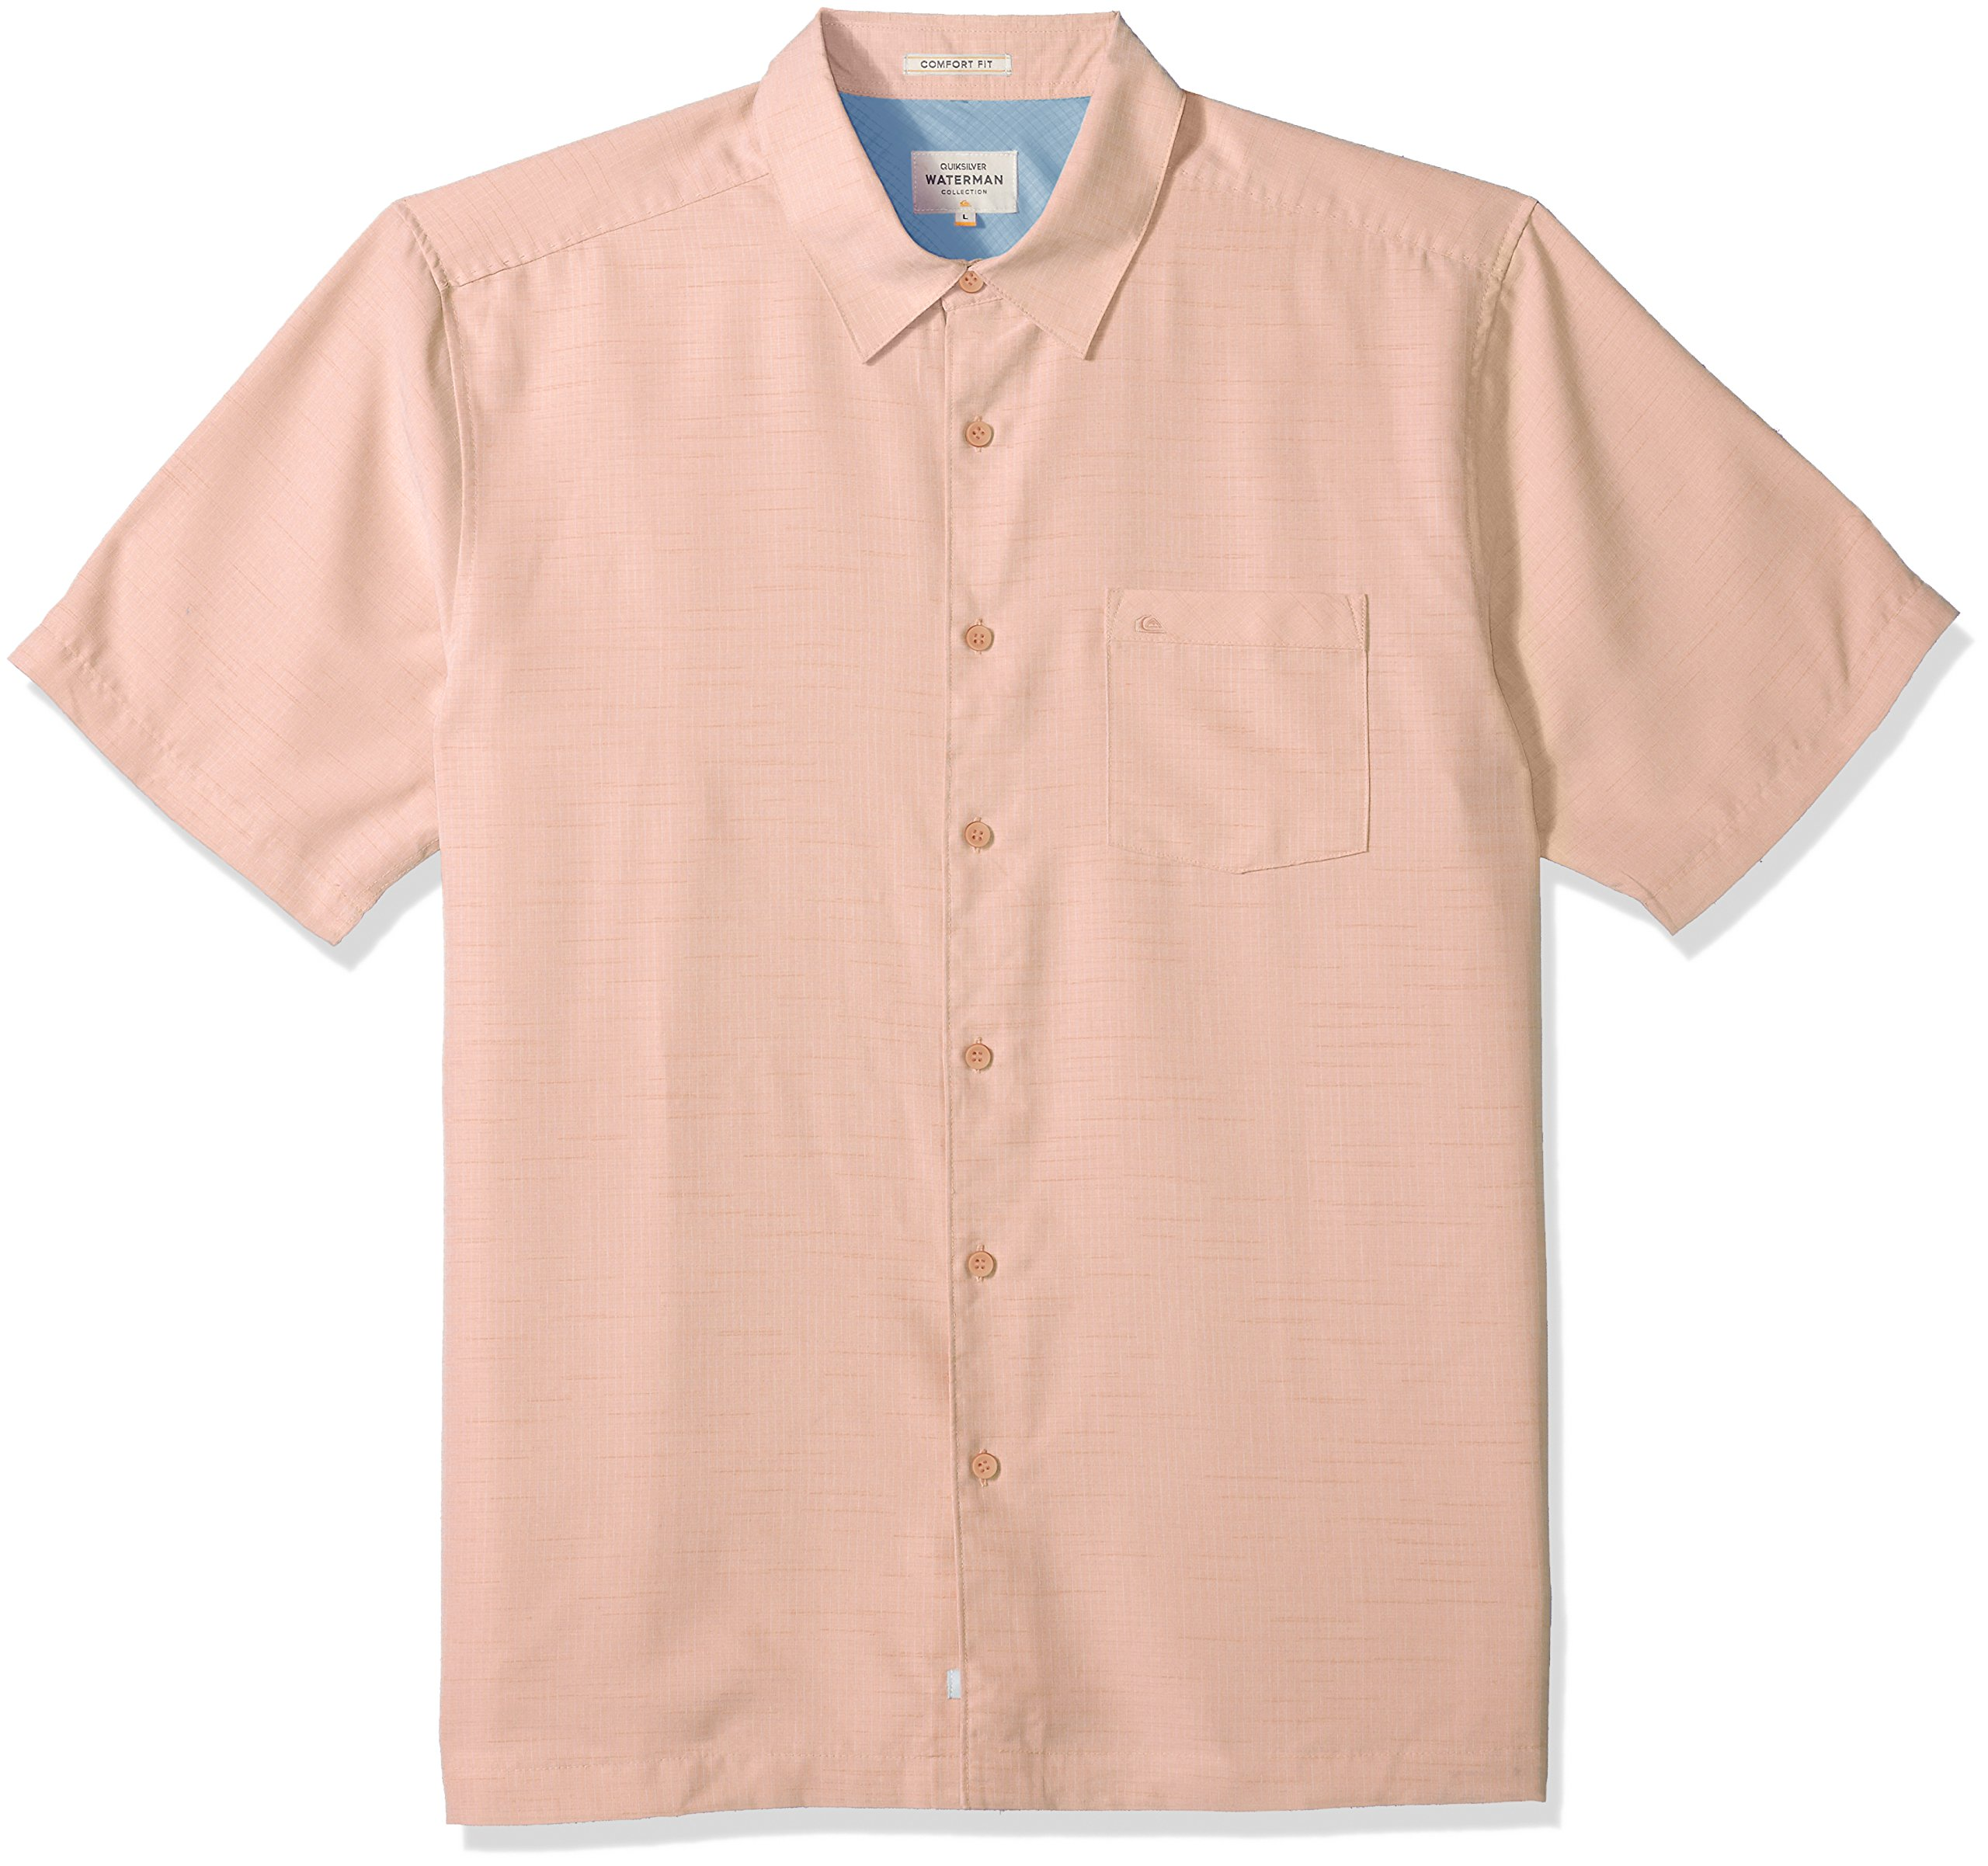 4c74a844 Galleon - Quiksilver Waterman Men's Centinela 4 Button Down Shirt, Dusty  Coral, M